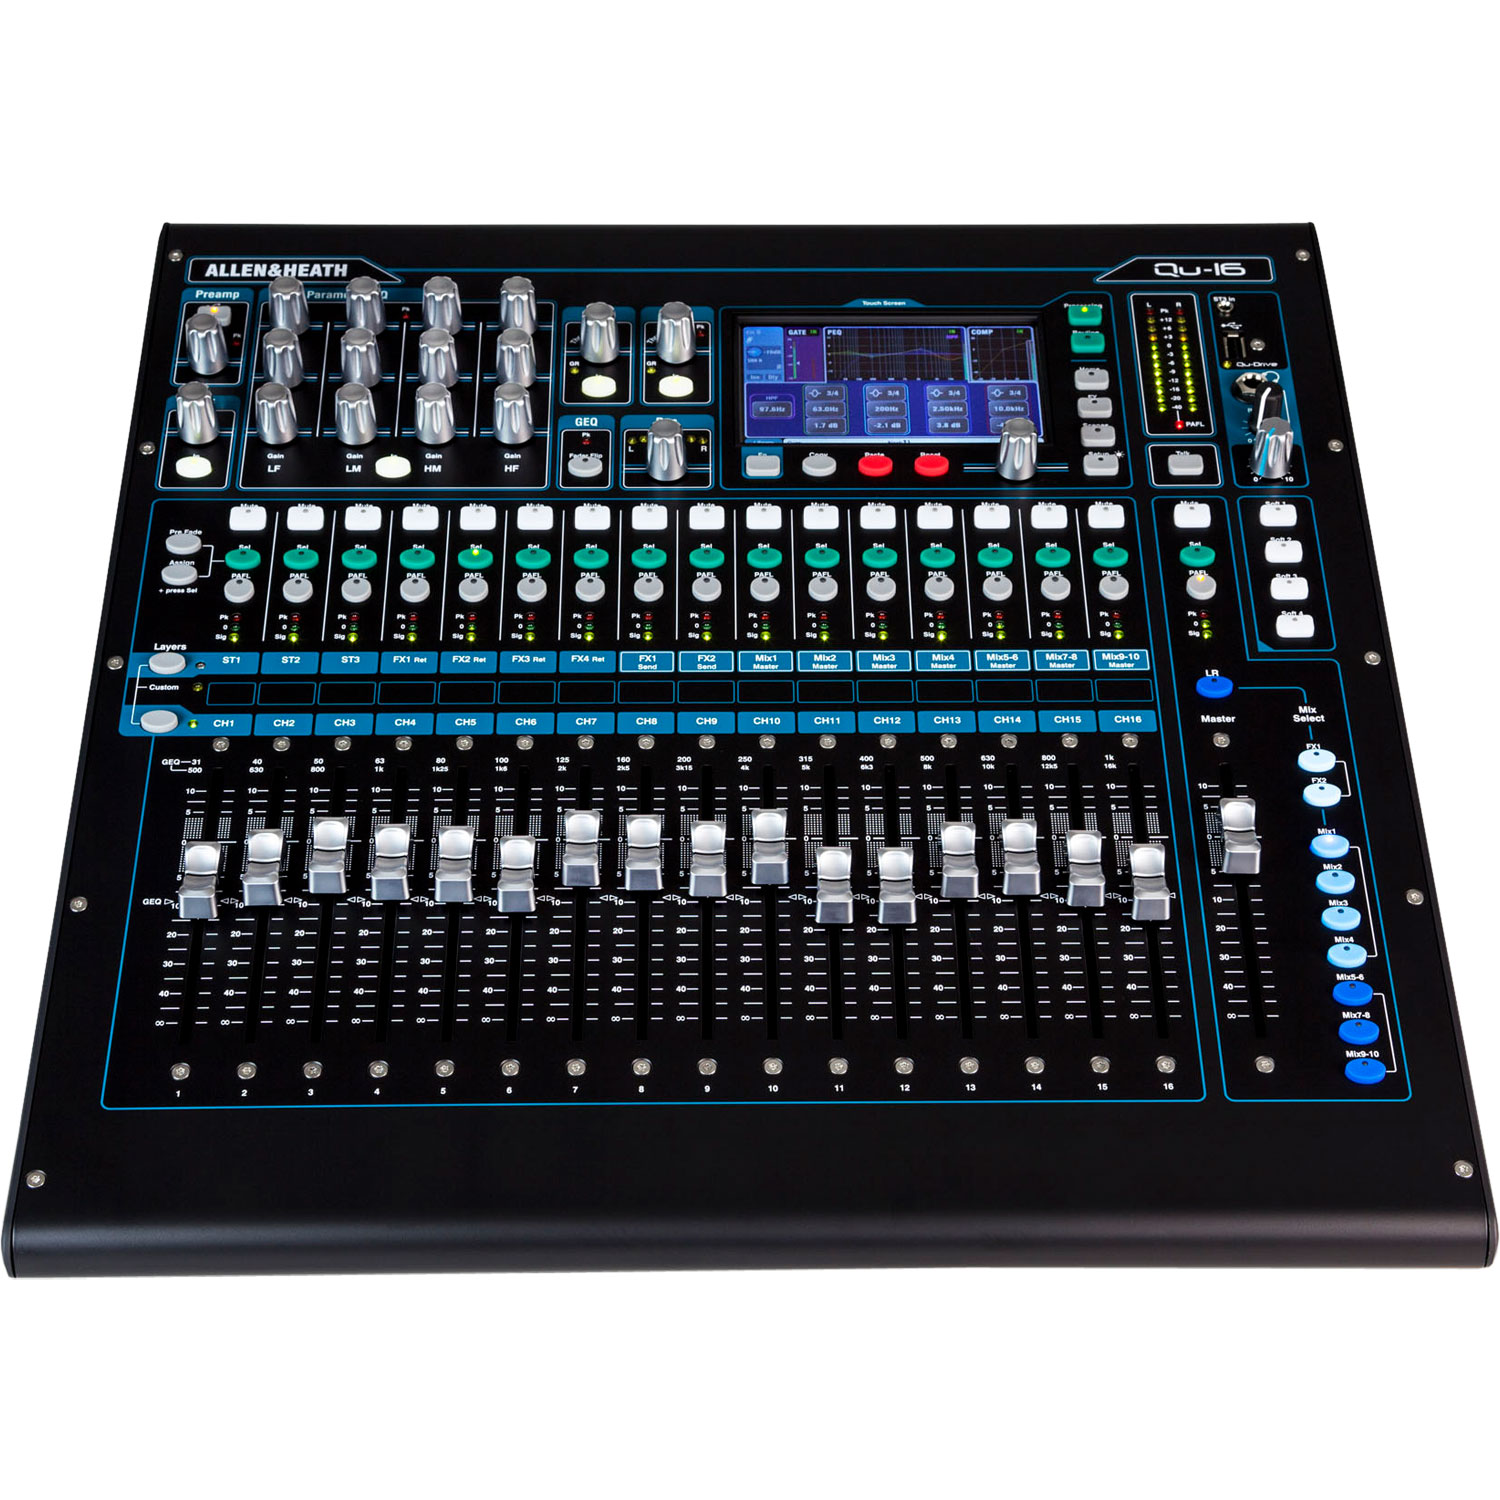 Allen & Heath 16-Channel Digital Mixer with QU-Drive, Chrome Edition